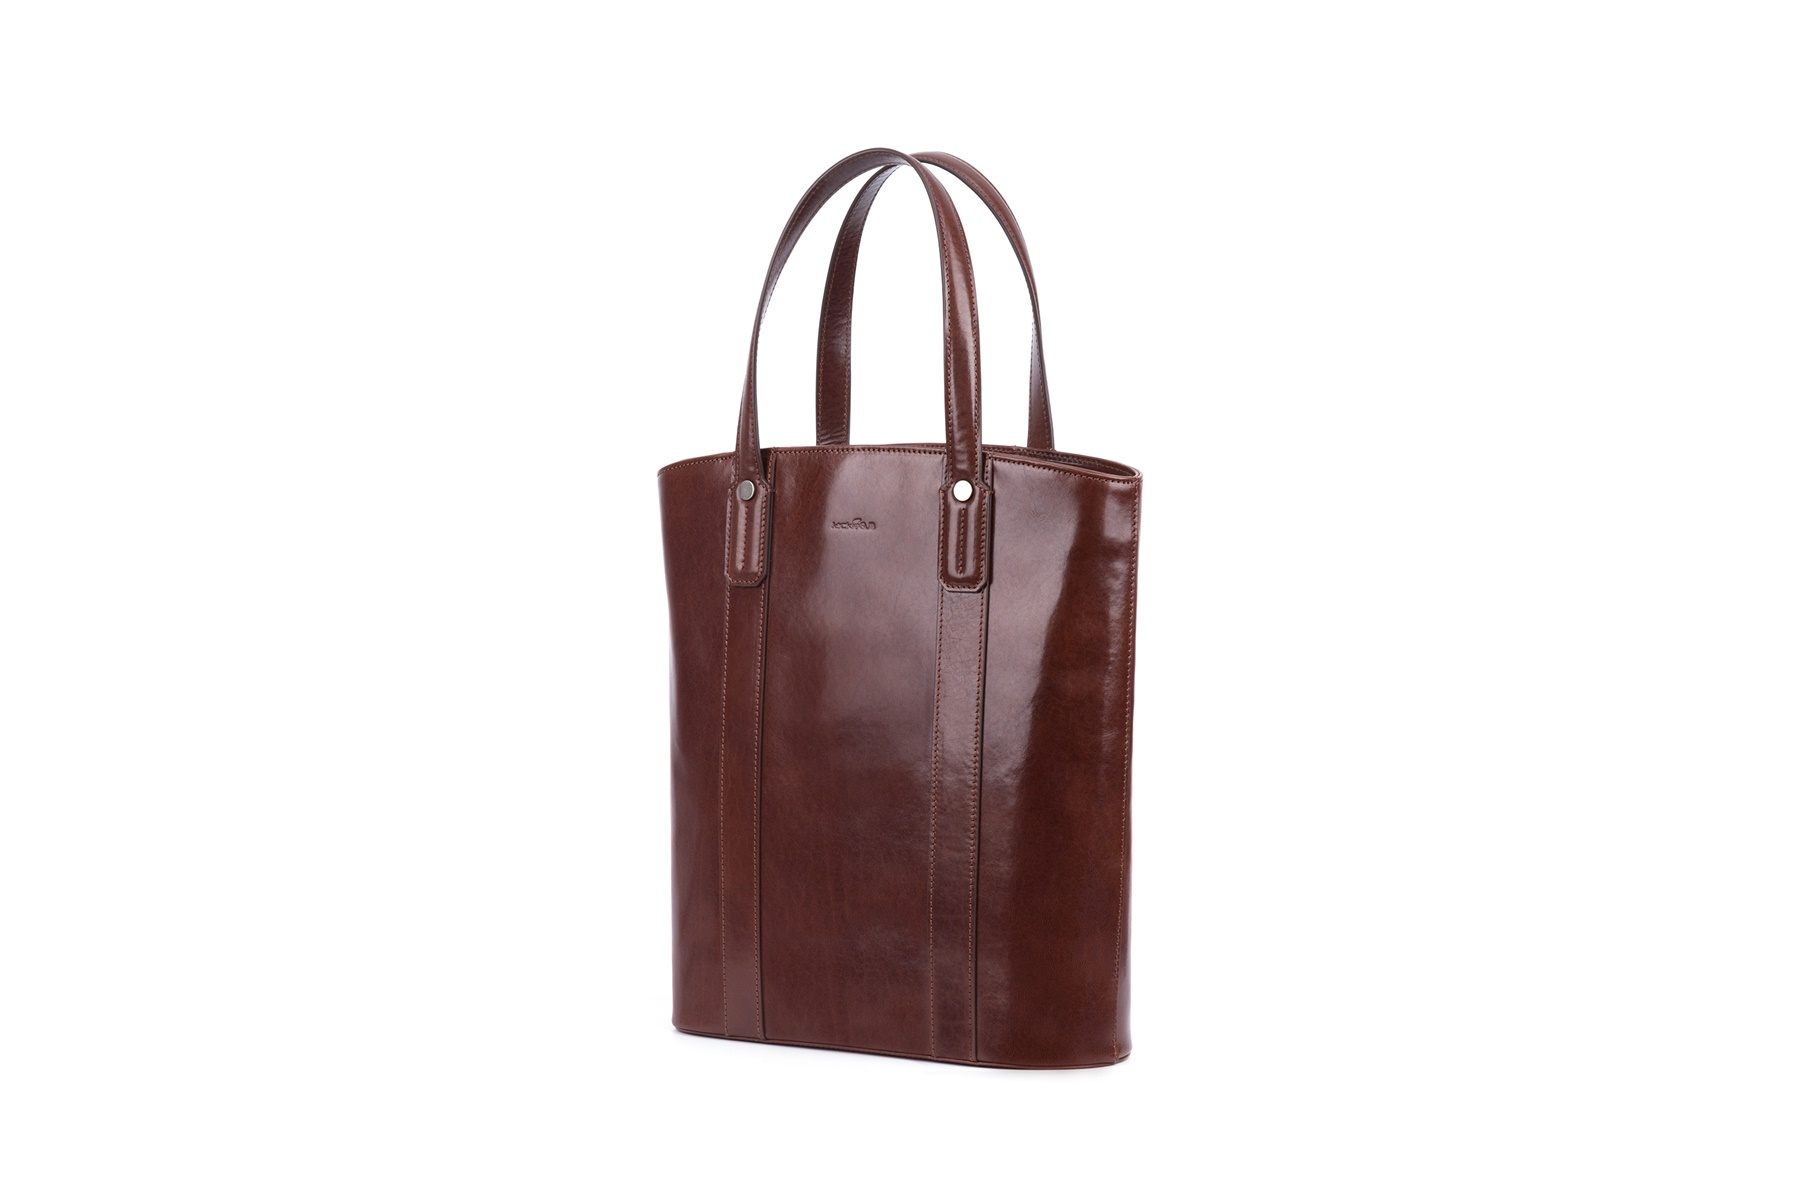 GF bags-Womens Work Tote Tote Leather Handle With Zipper Closure-2